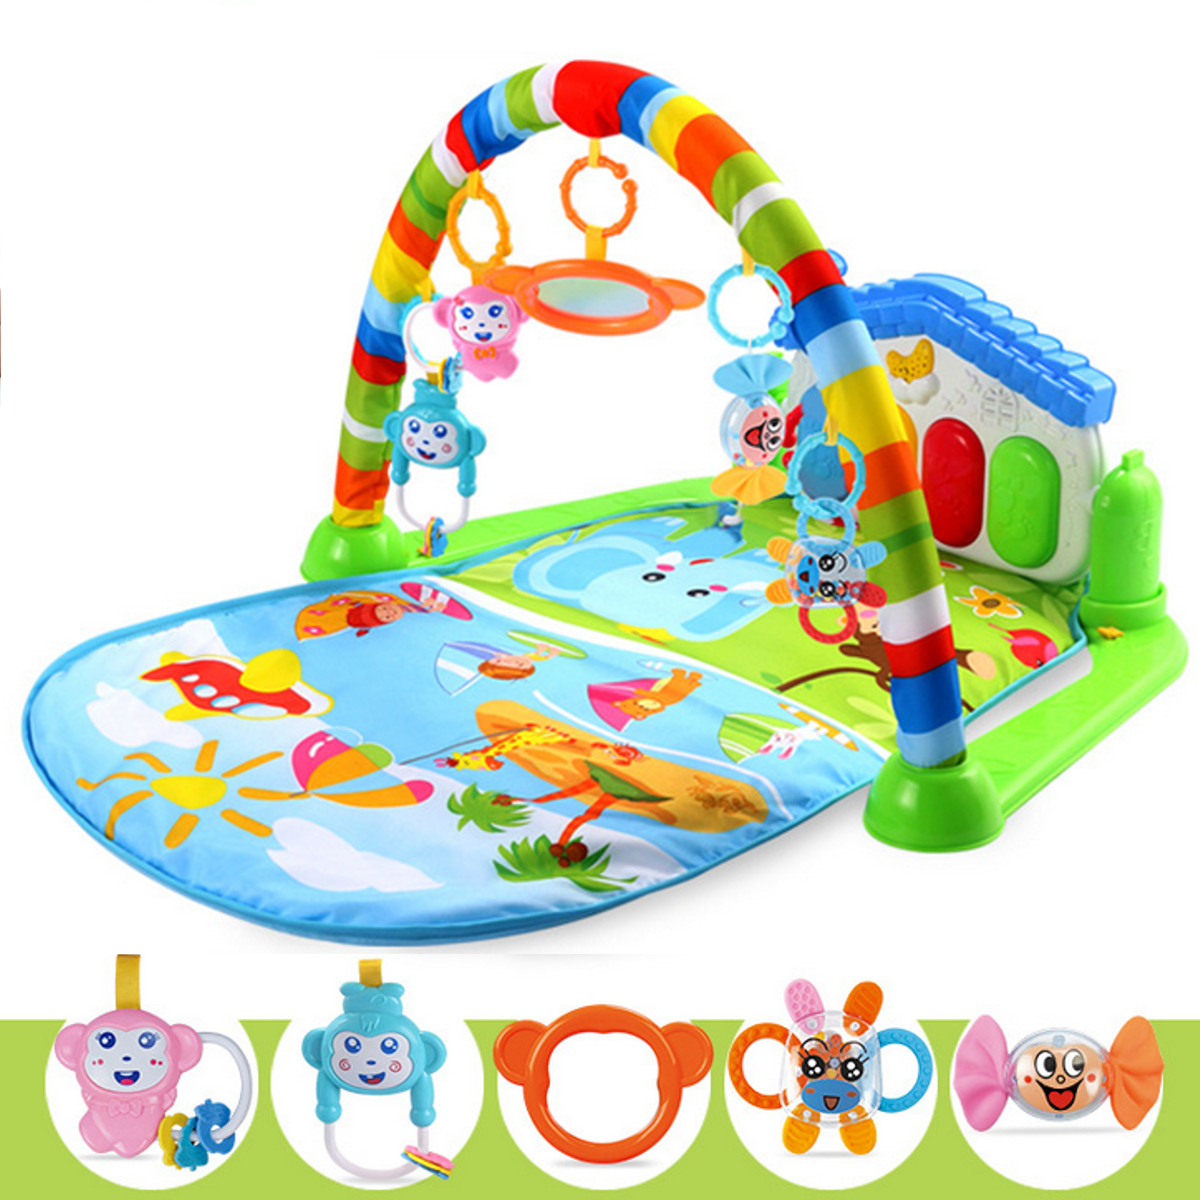 Baby Gym Fitness Playmat Lay Play Music Lights Fun Piano Activity Toy Christmas Gift 3 In